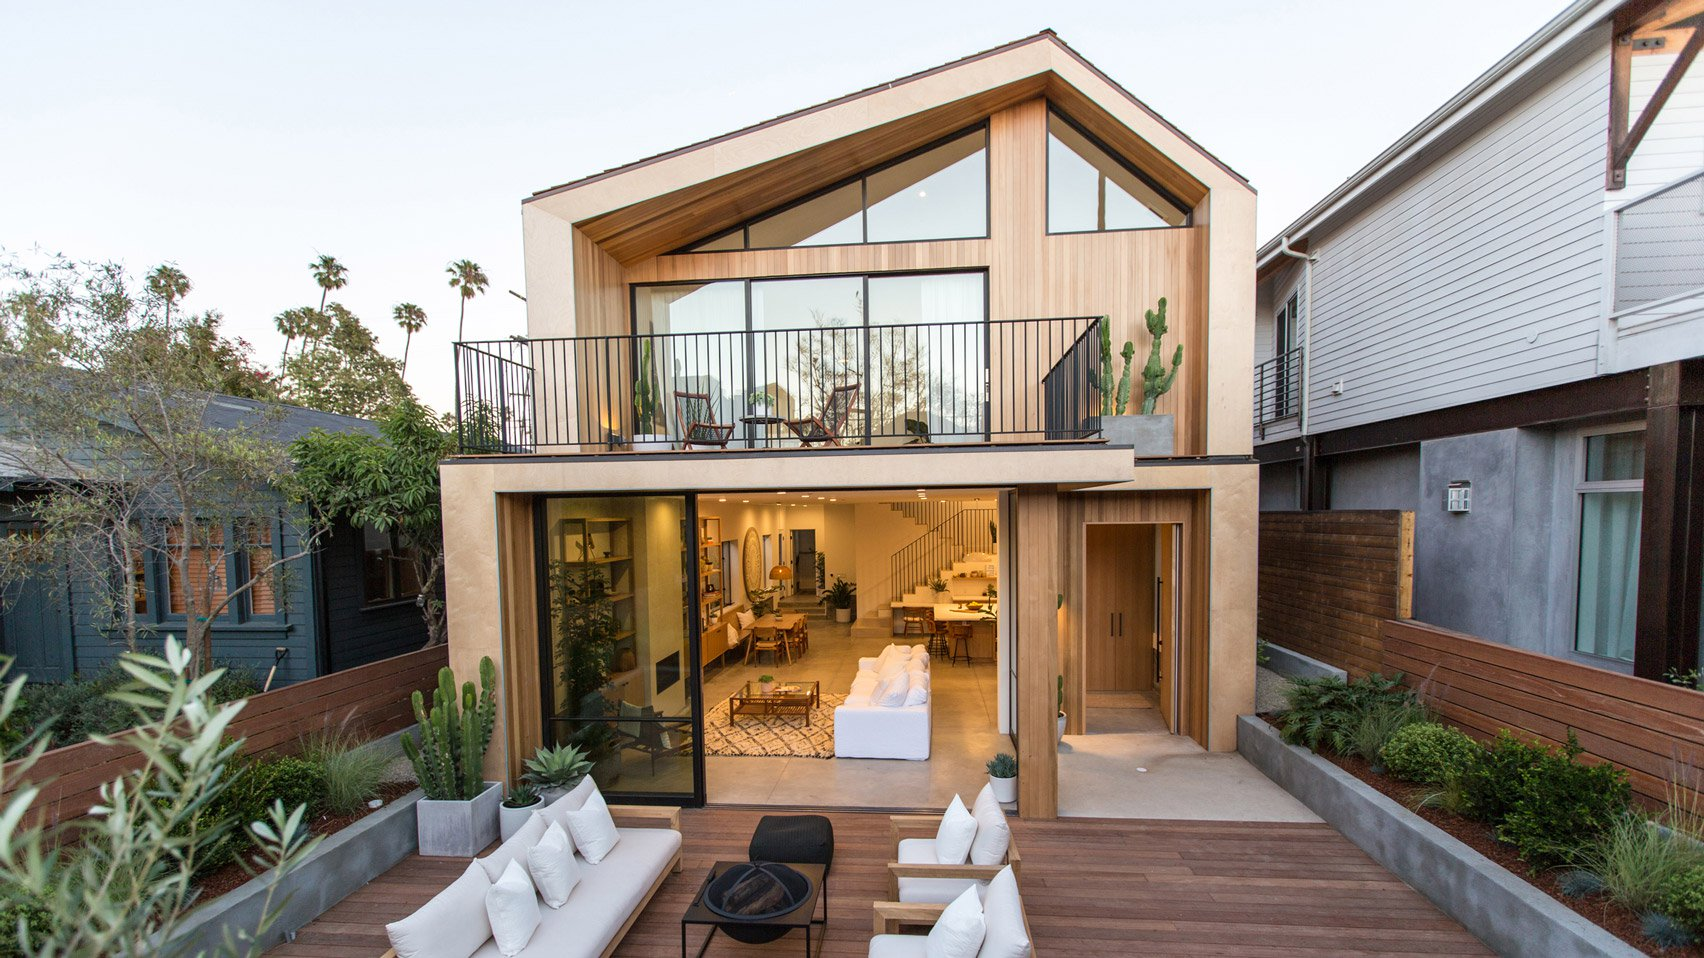 Venice beach house by electric bowery features askew for Beach house design features